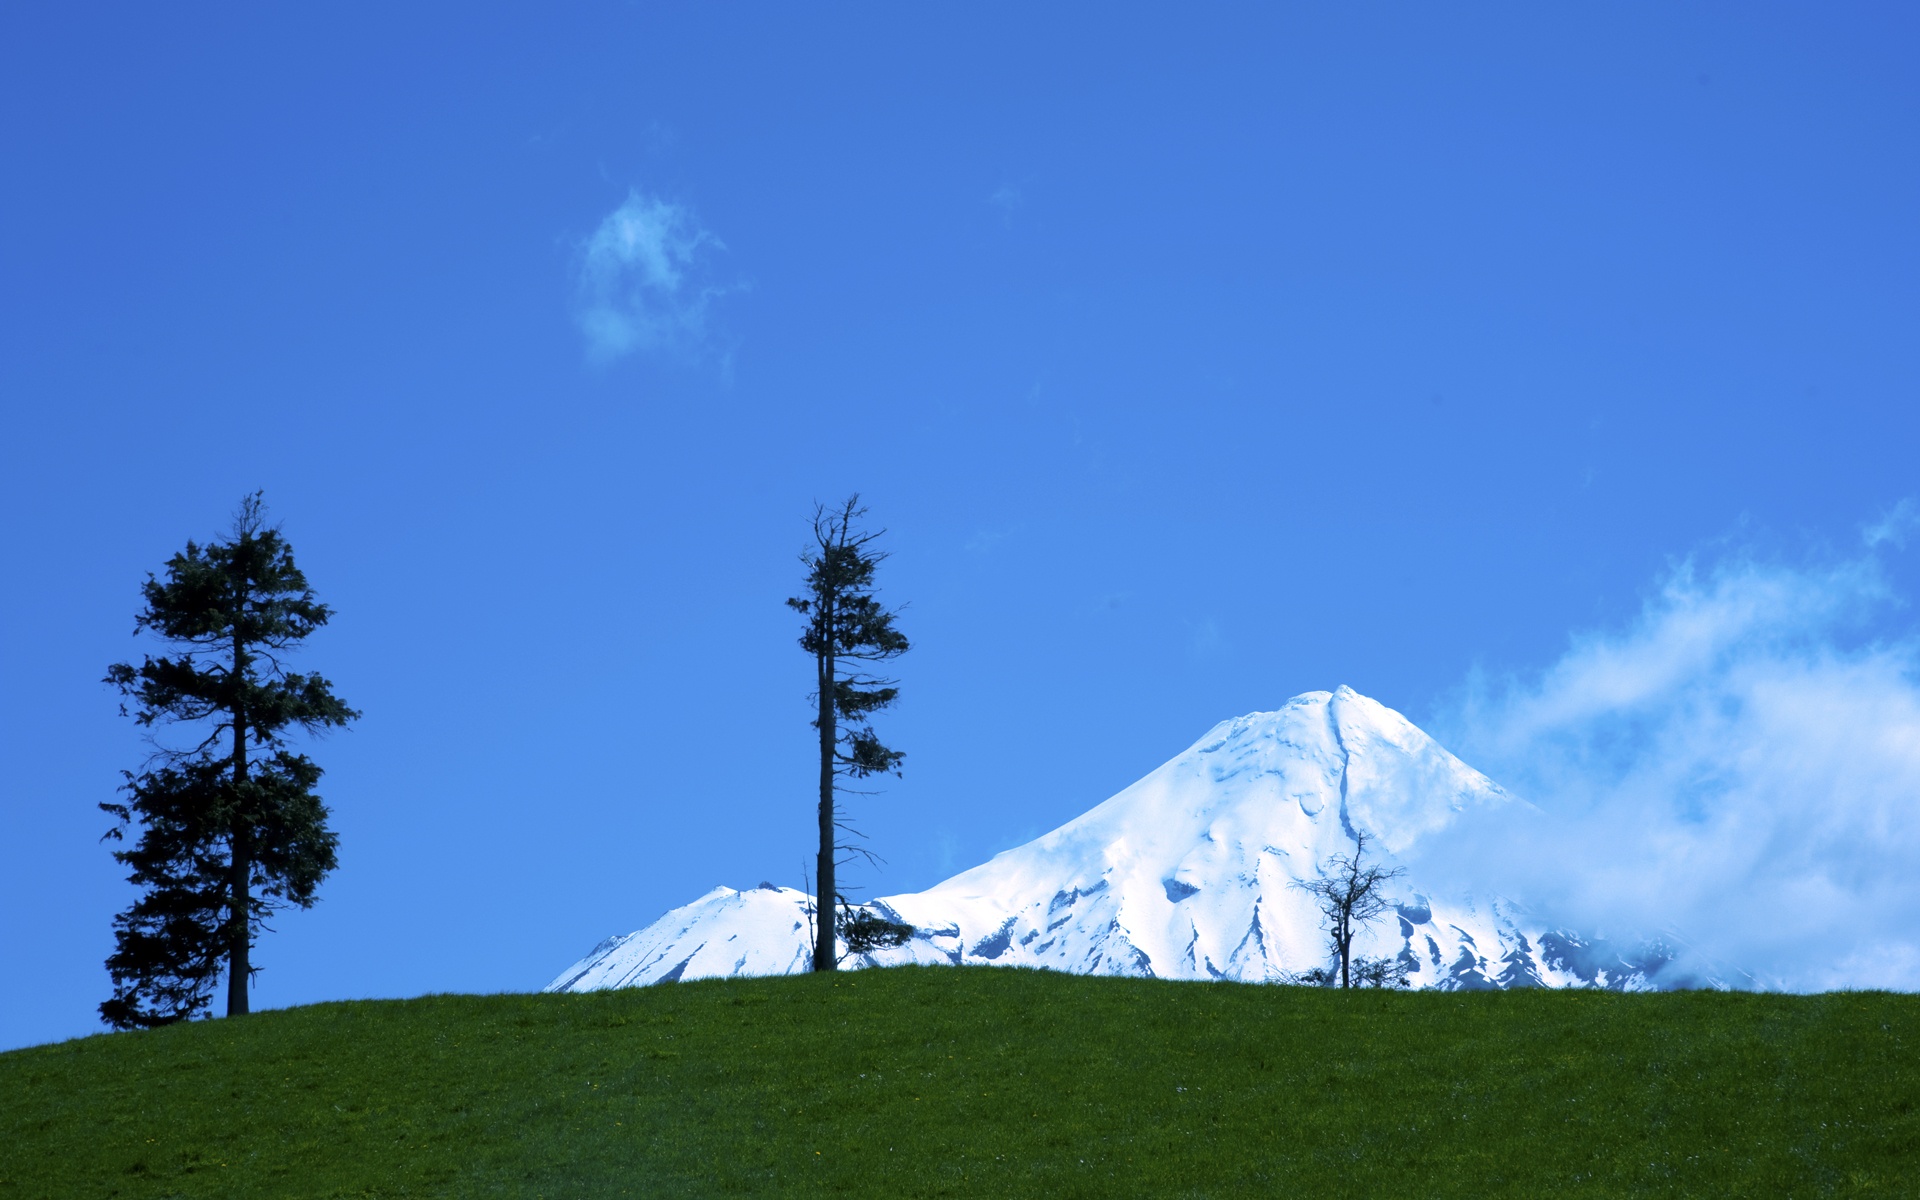 DSC_2758. Cool majesty, on Waingongoro Rd, South Taranaki